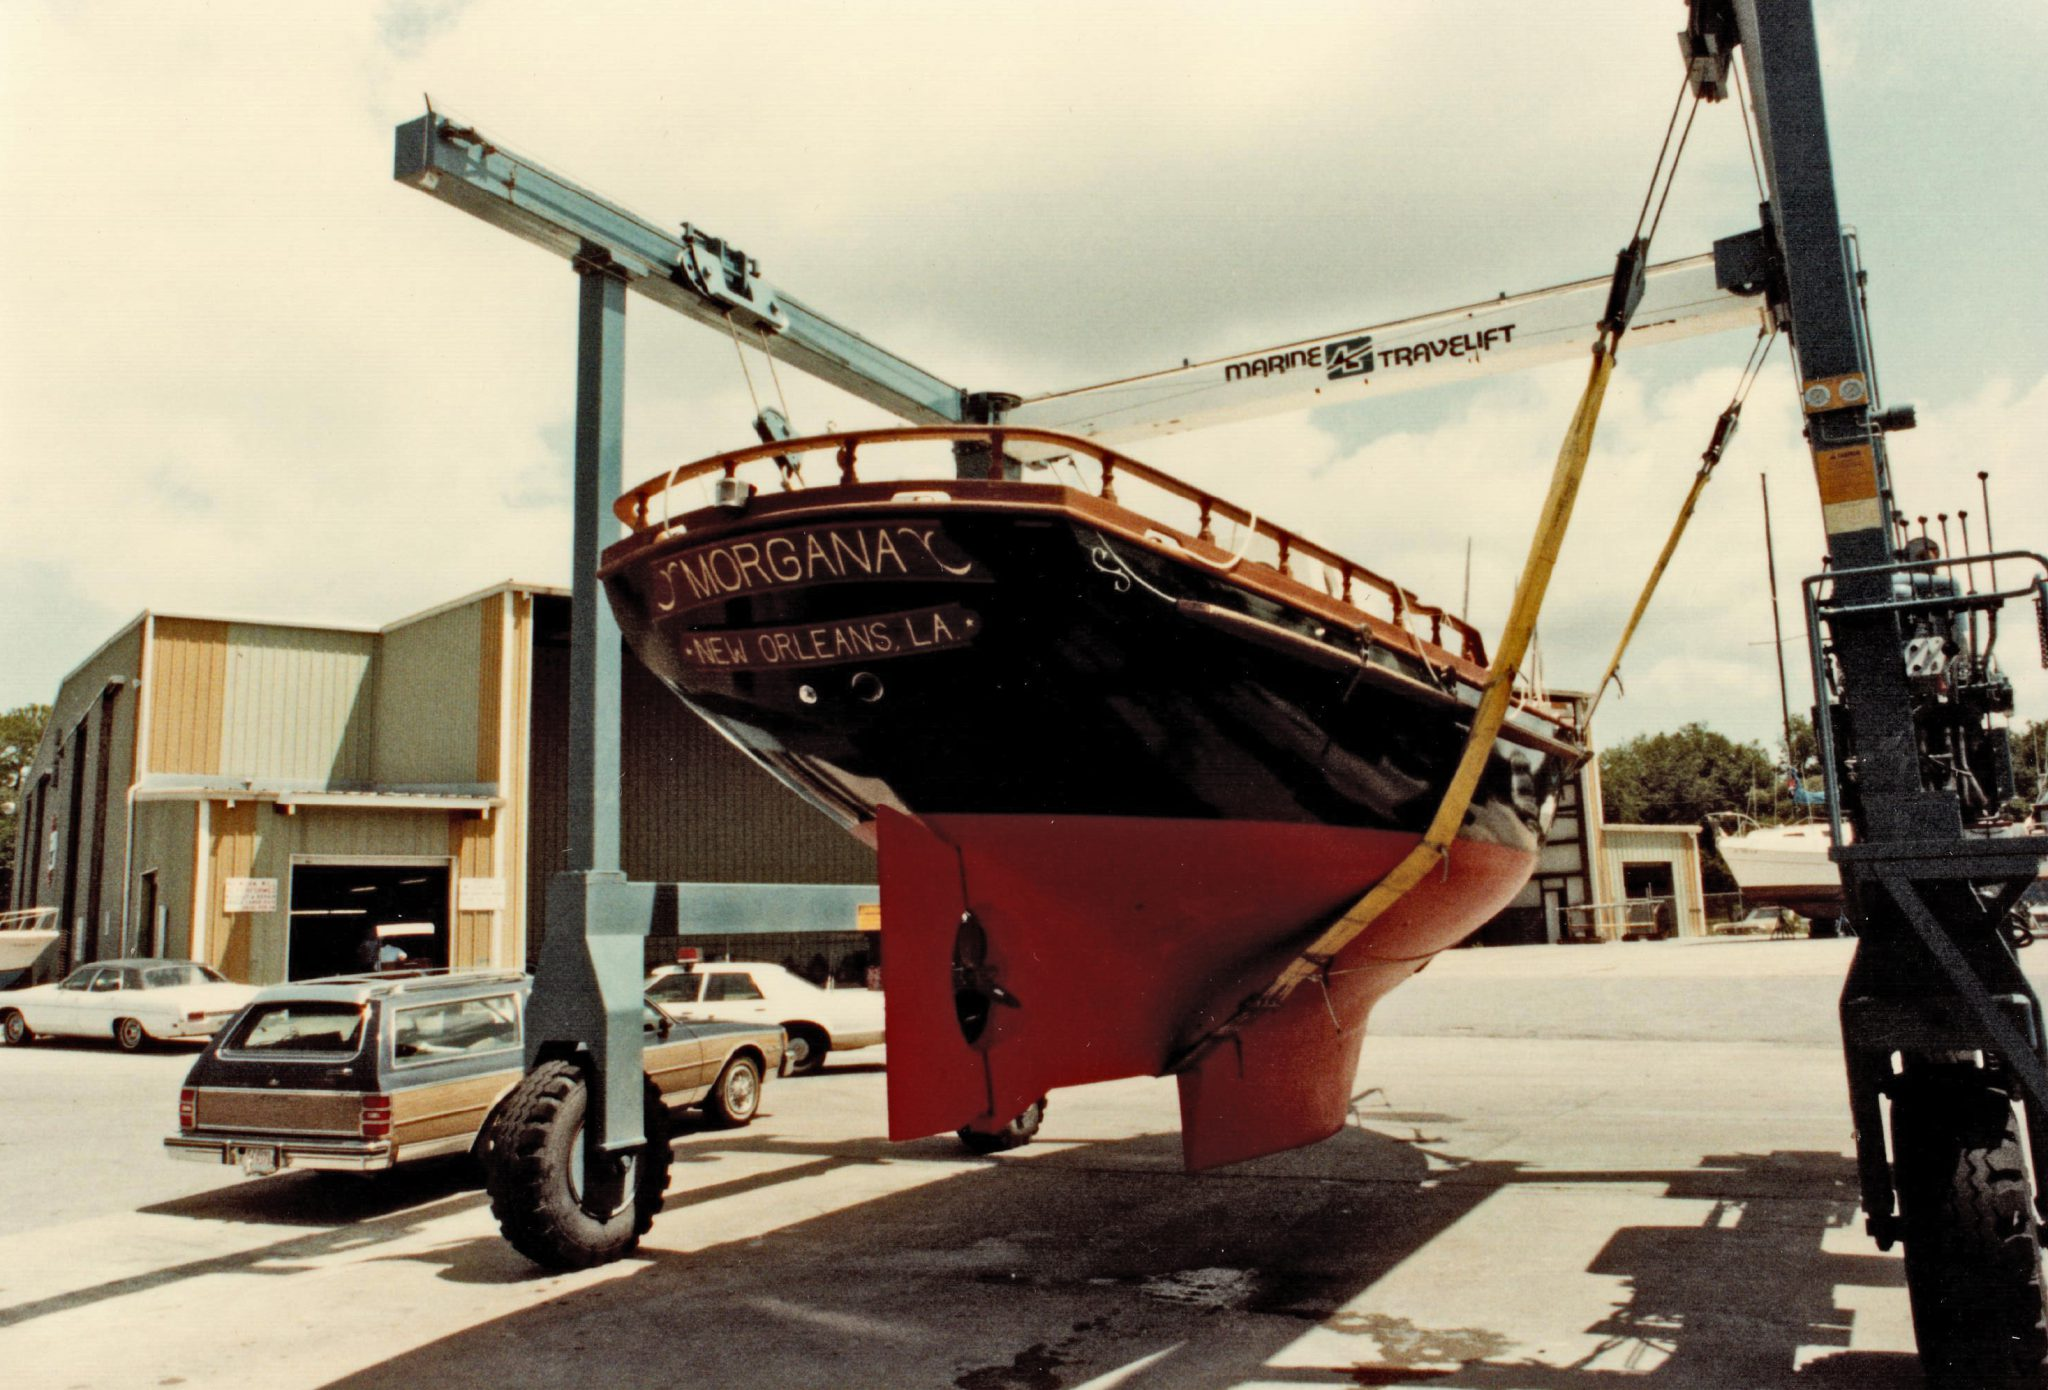 Travel lift taking Morgana to water for testing